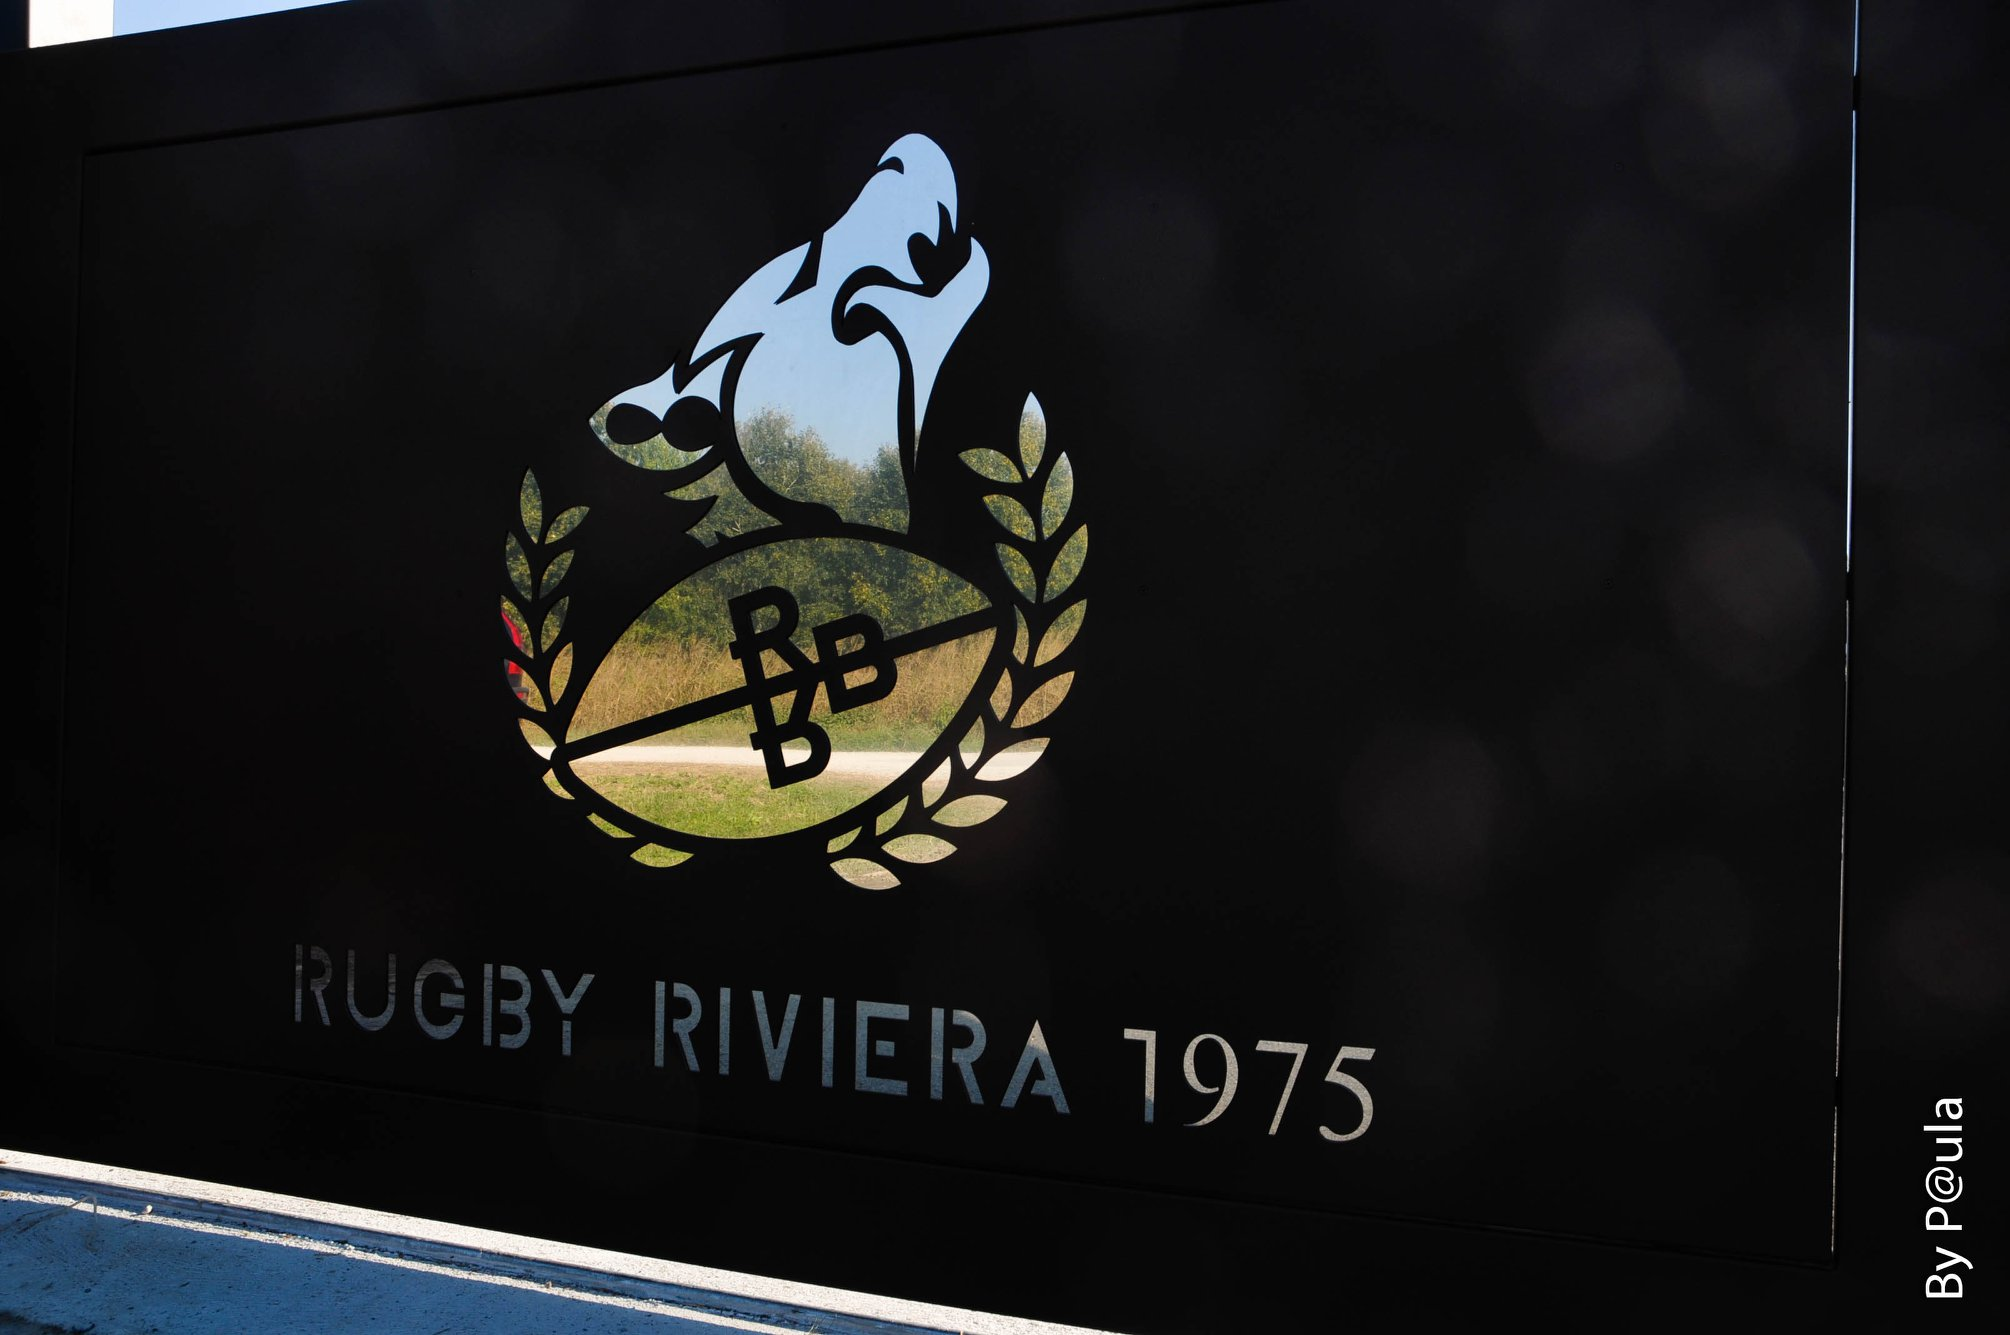 Rugby Riviera 1975 - cancello club house